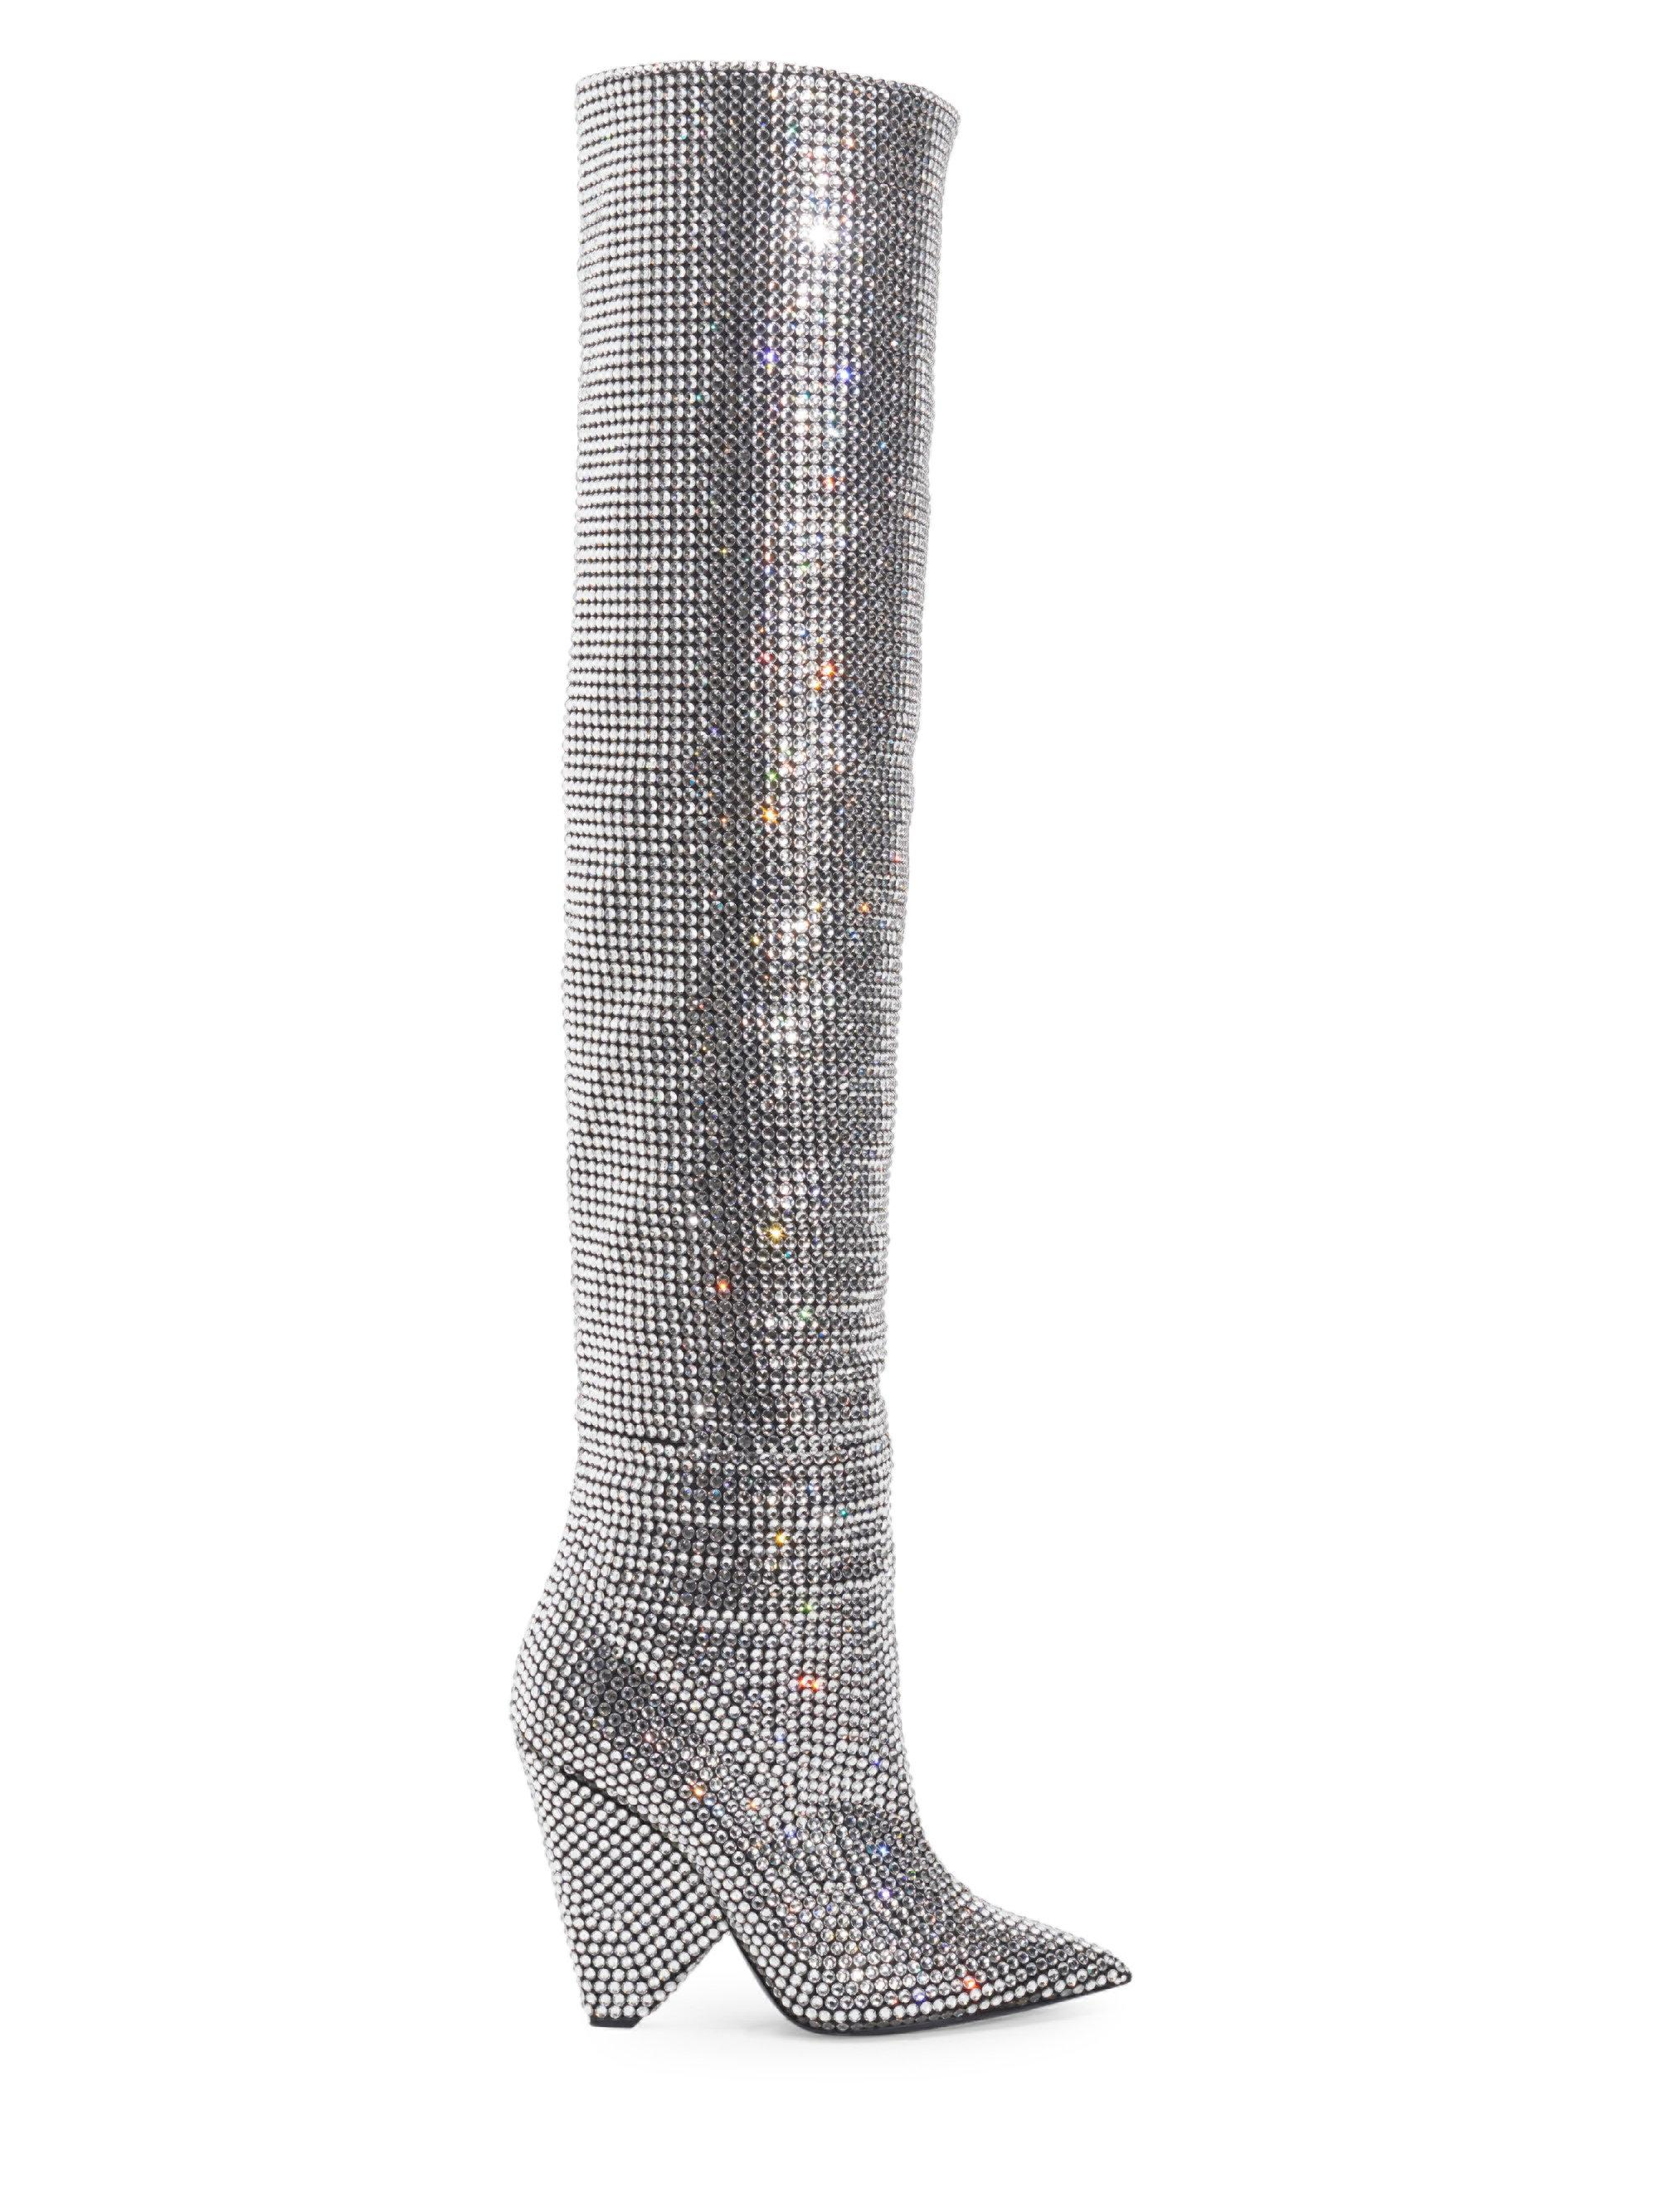 6b80733181b Lyst - Saint Laurent Niki Over-the-knee Crystal Boots in Gray